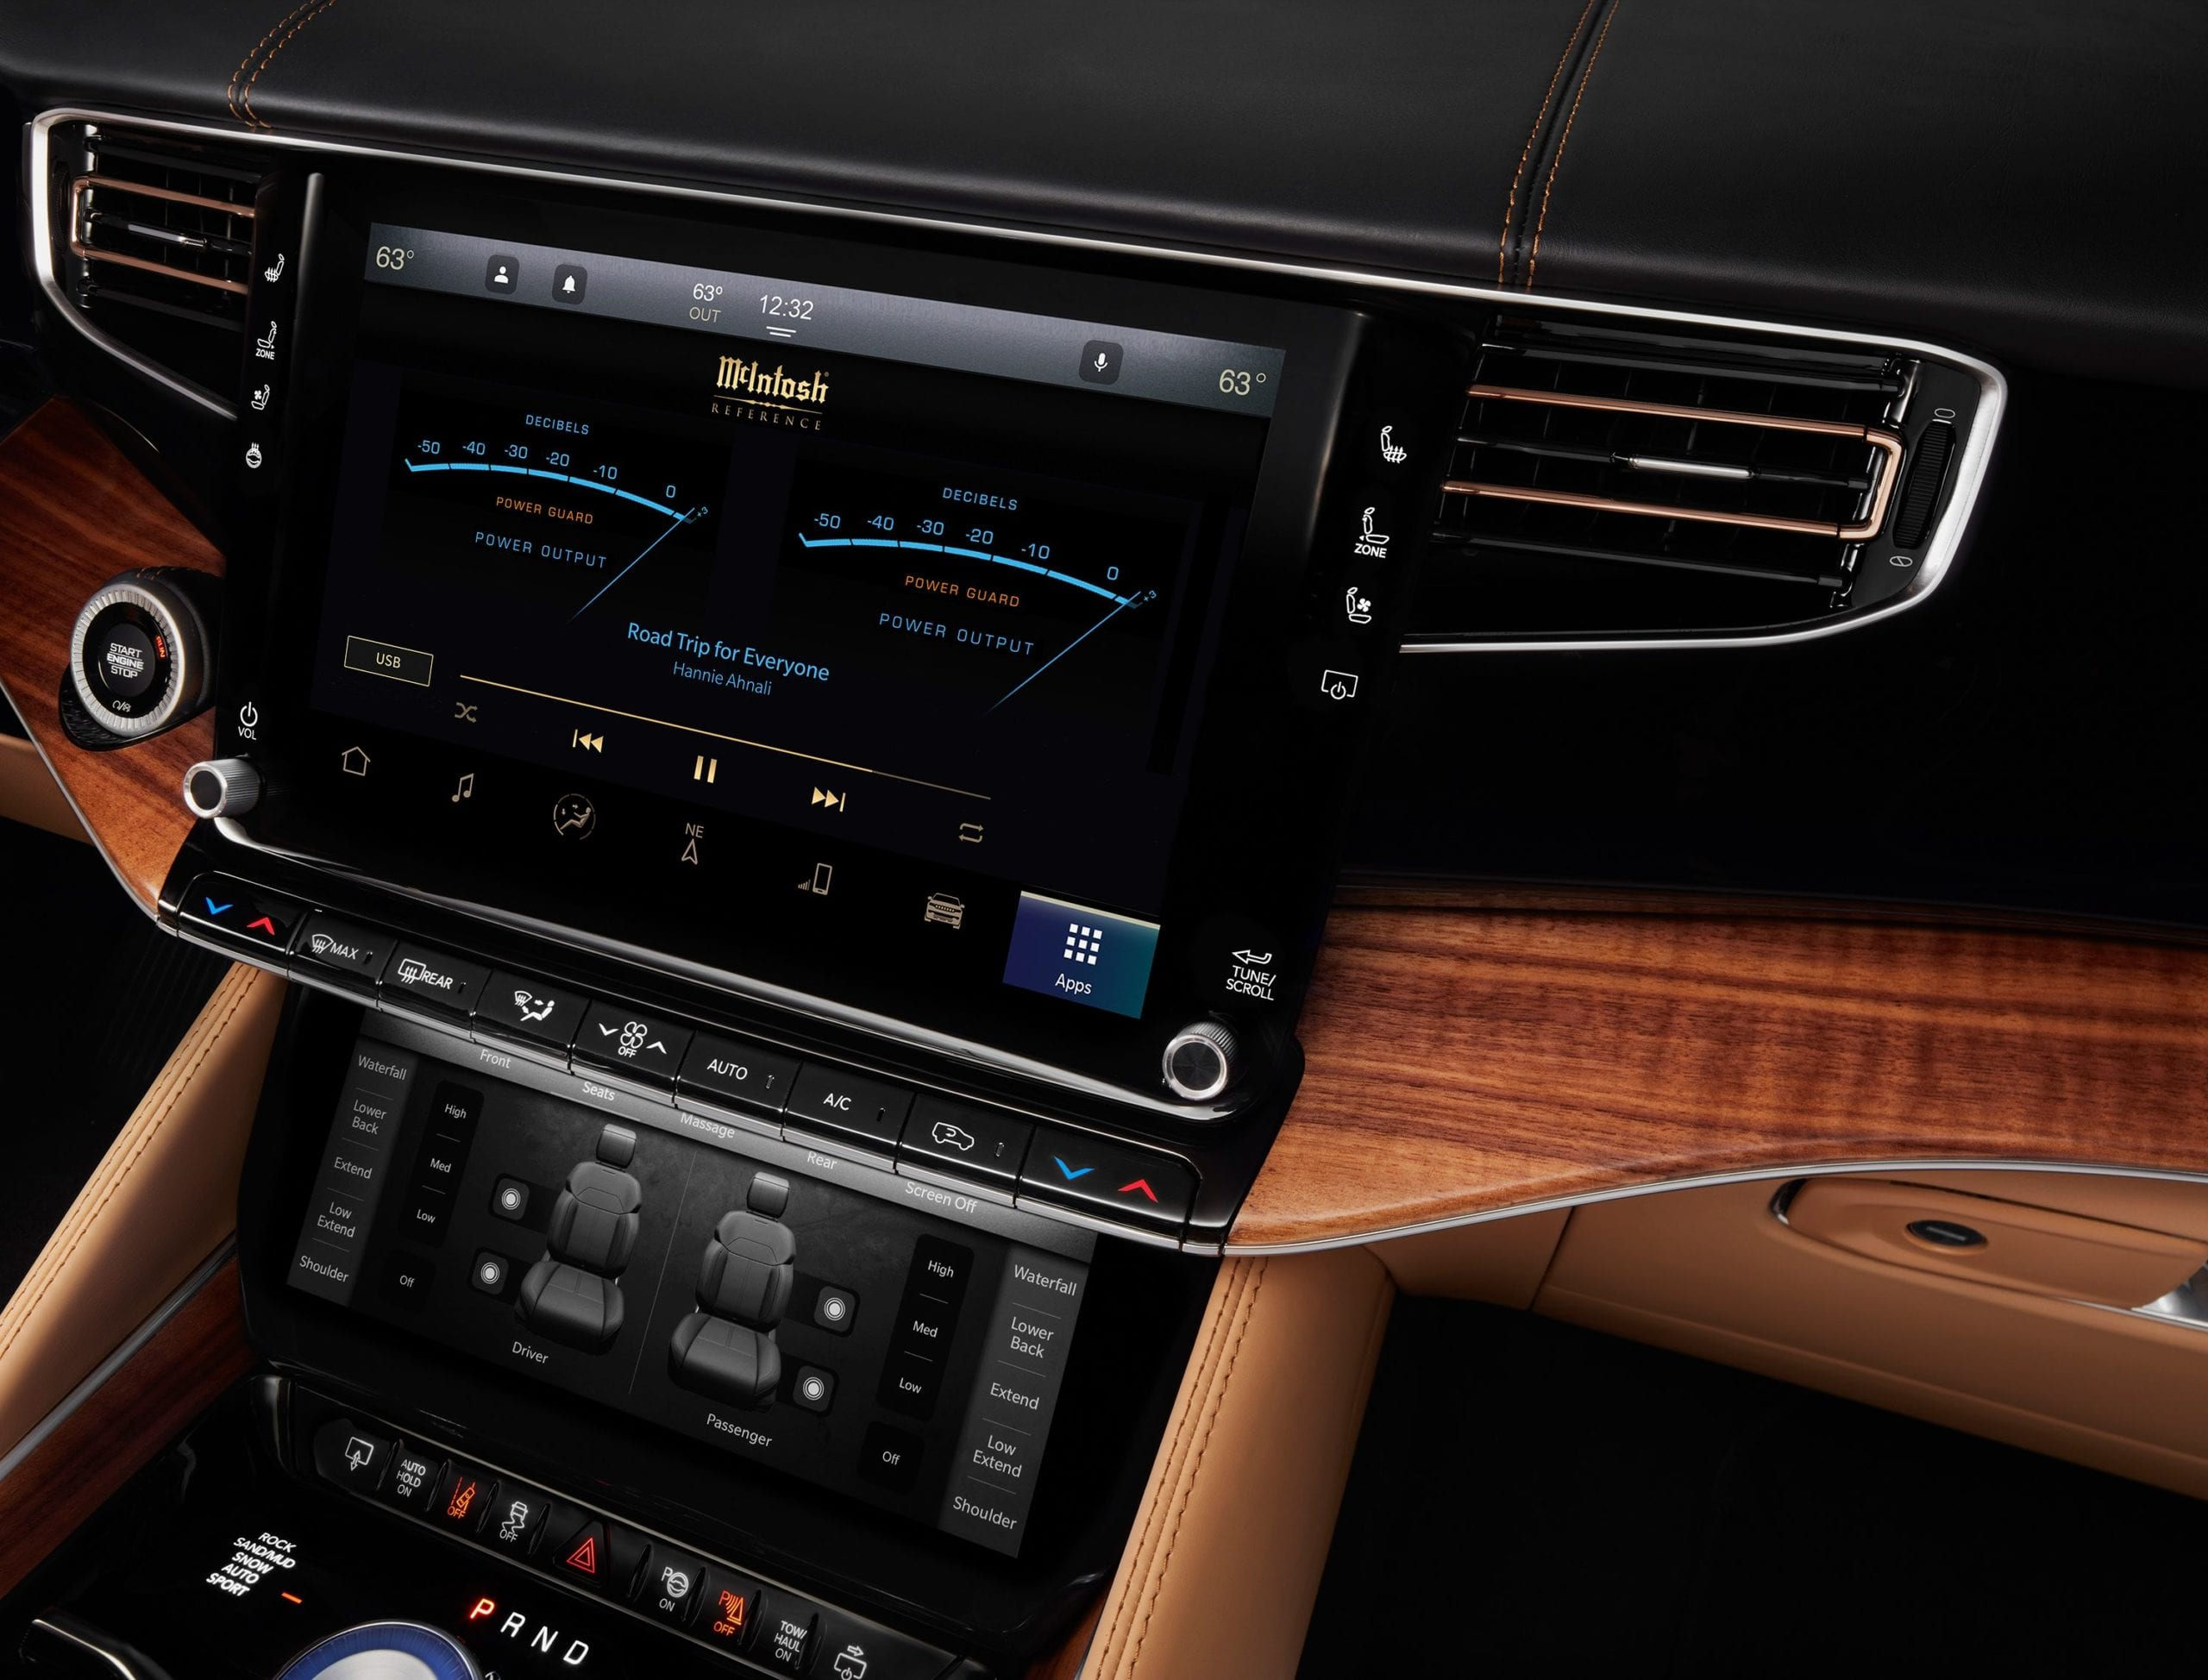 First-Ever Automotive Reference System From Mcintosh Featured in 2022 Grand Wagoneer